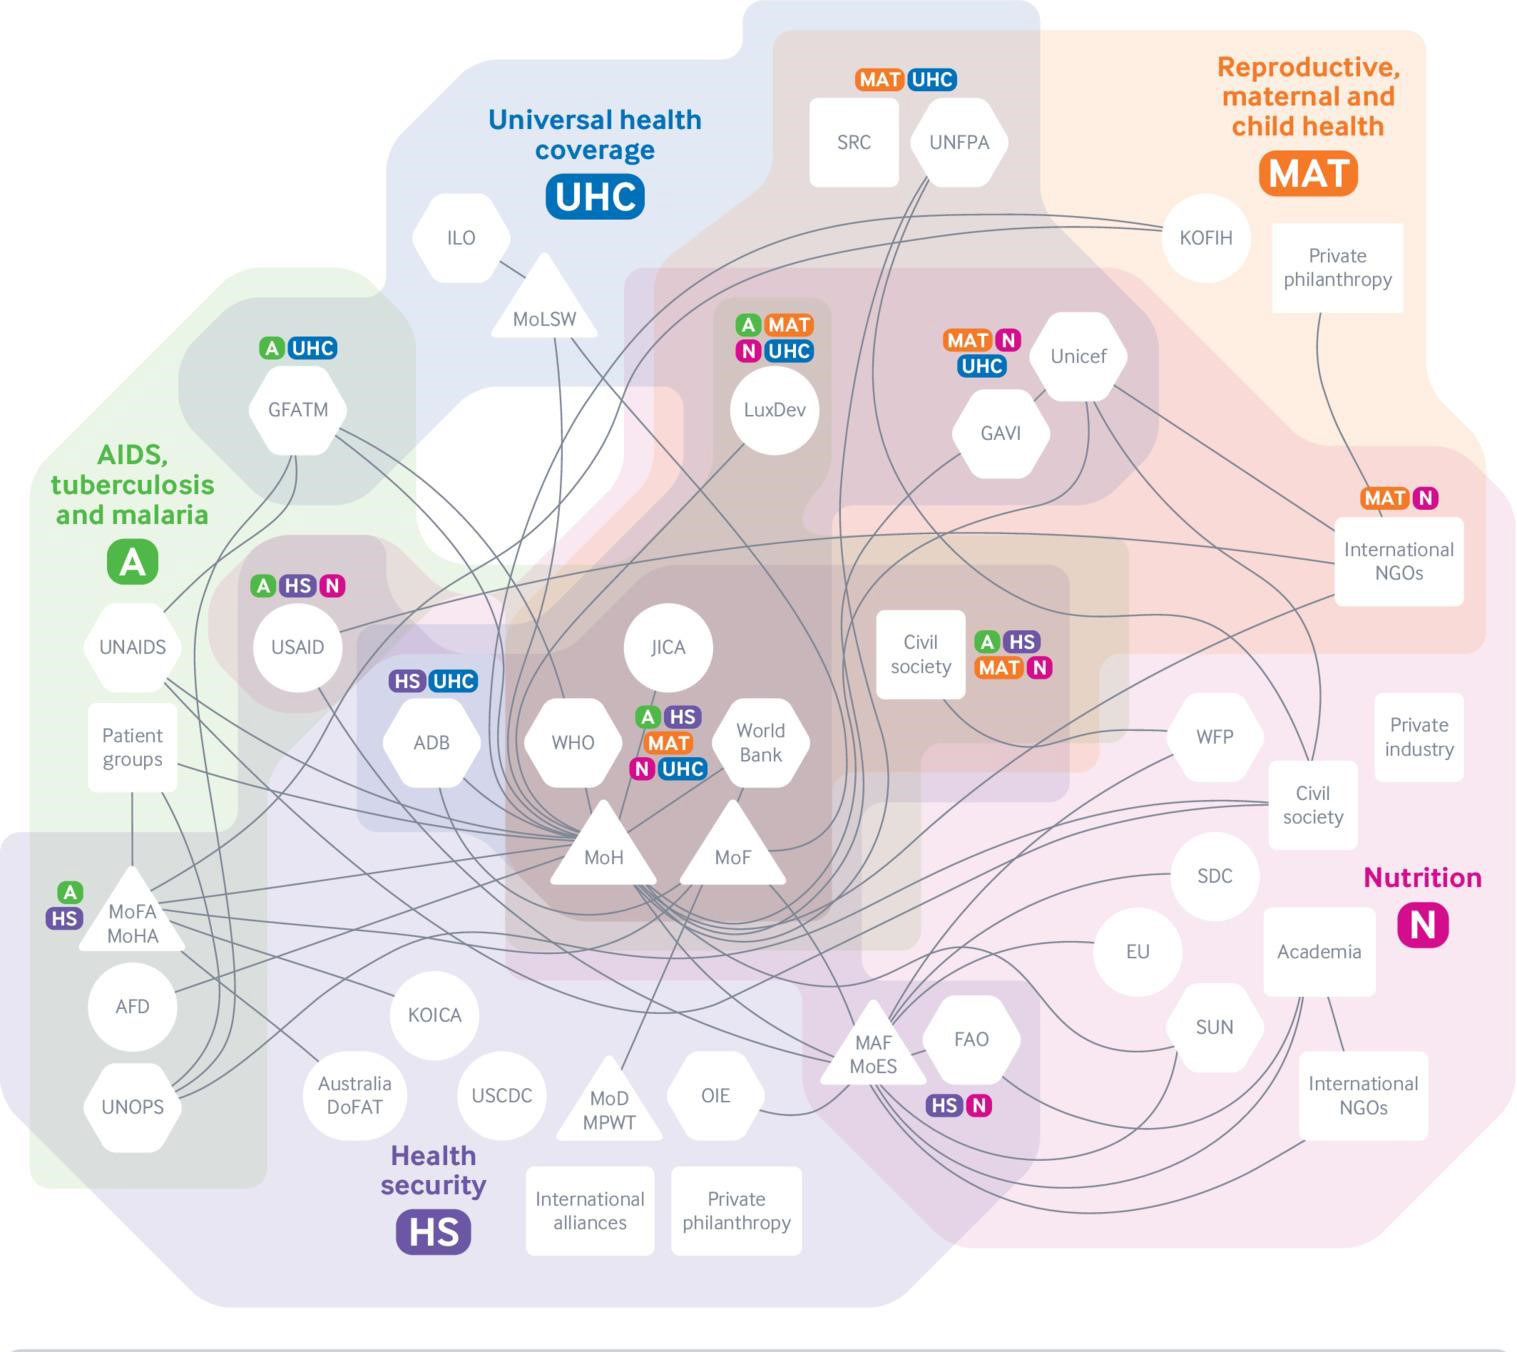 A complex web of global health development aid